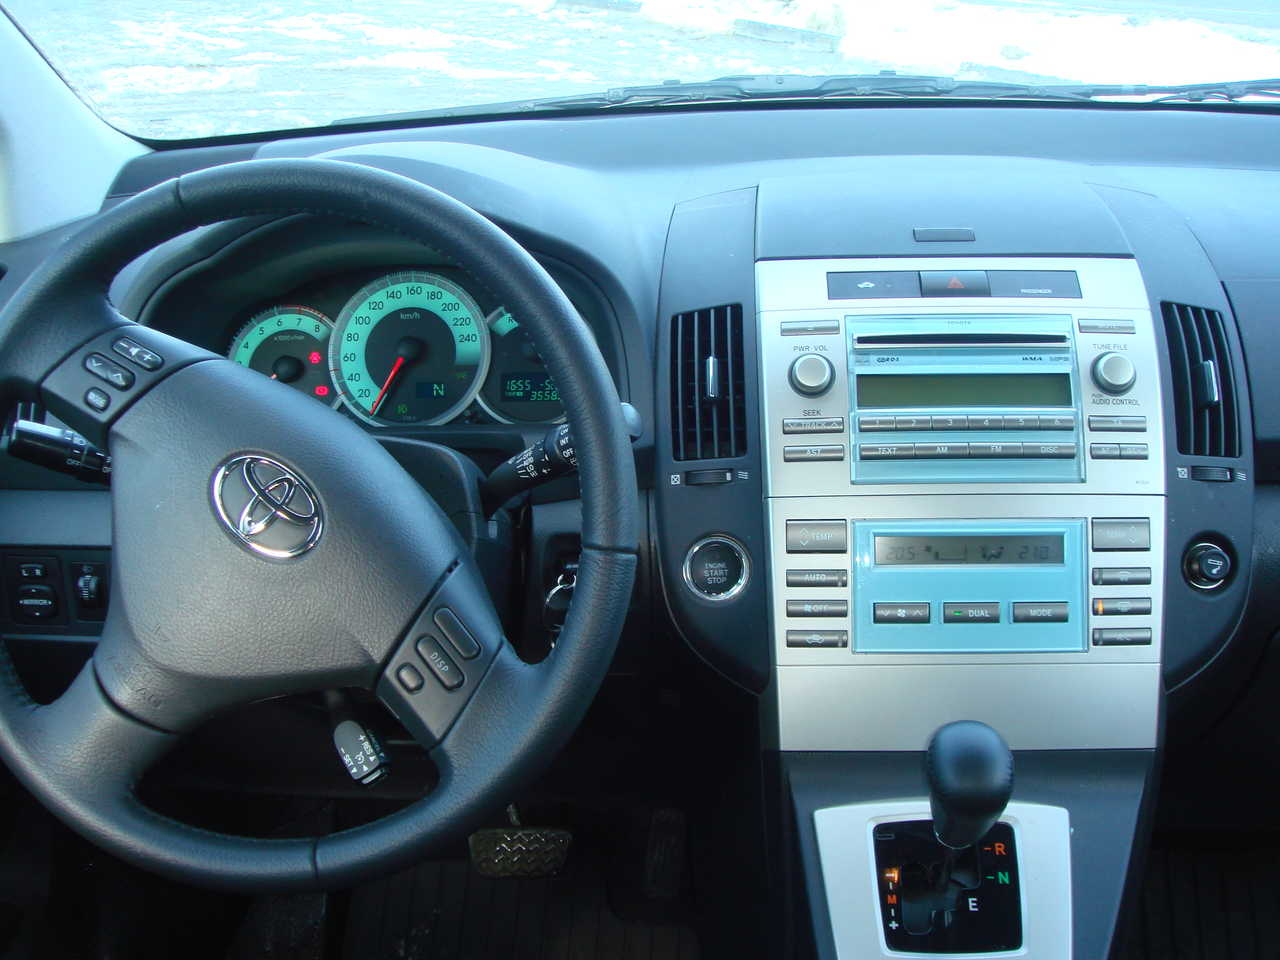 Toyota Verso SR: Now with even more to offer